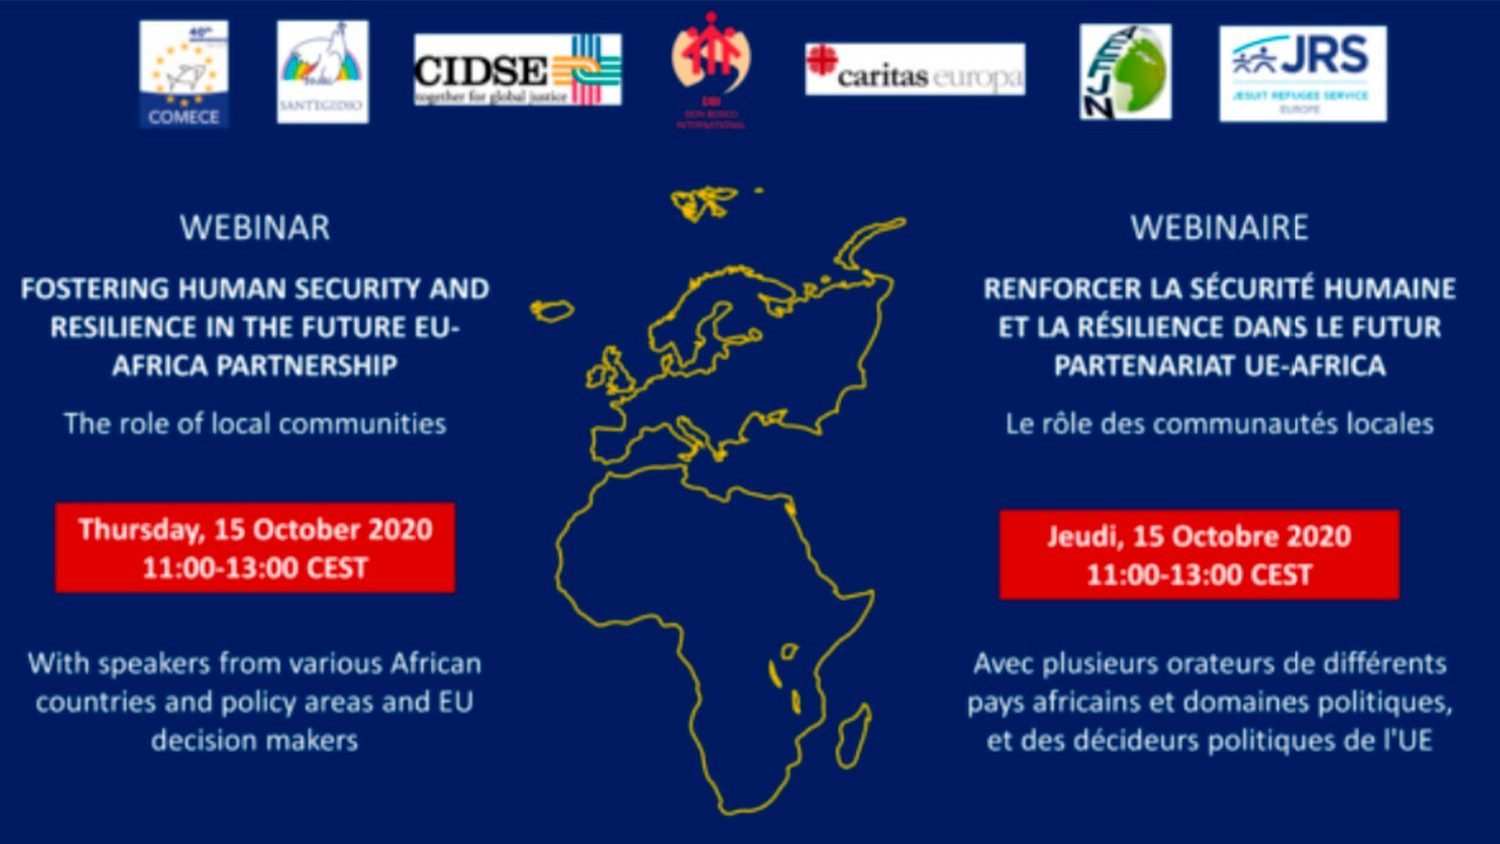 Human security and resilience highlighted at EU-Africa relations webinar - Vatican News